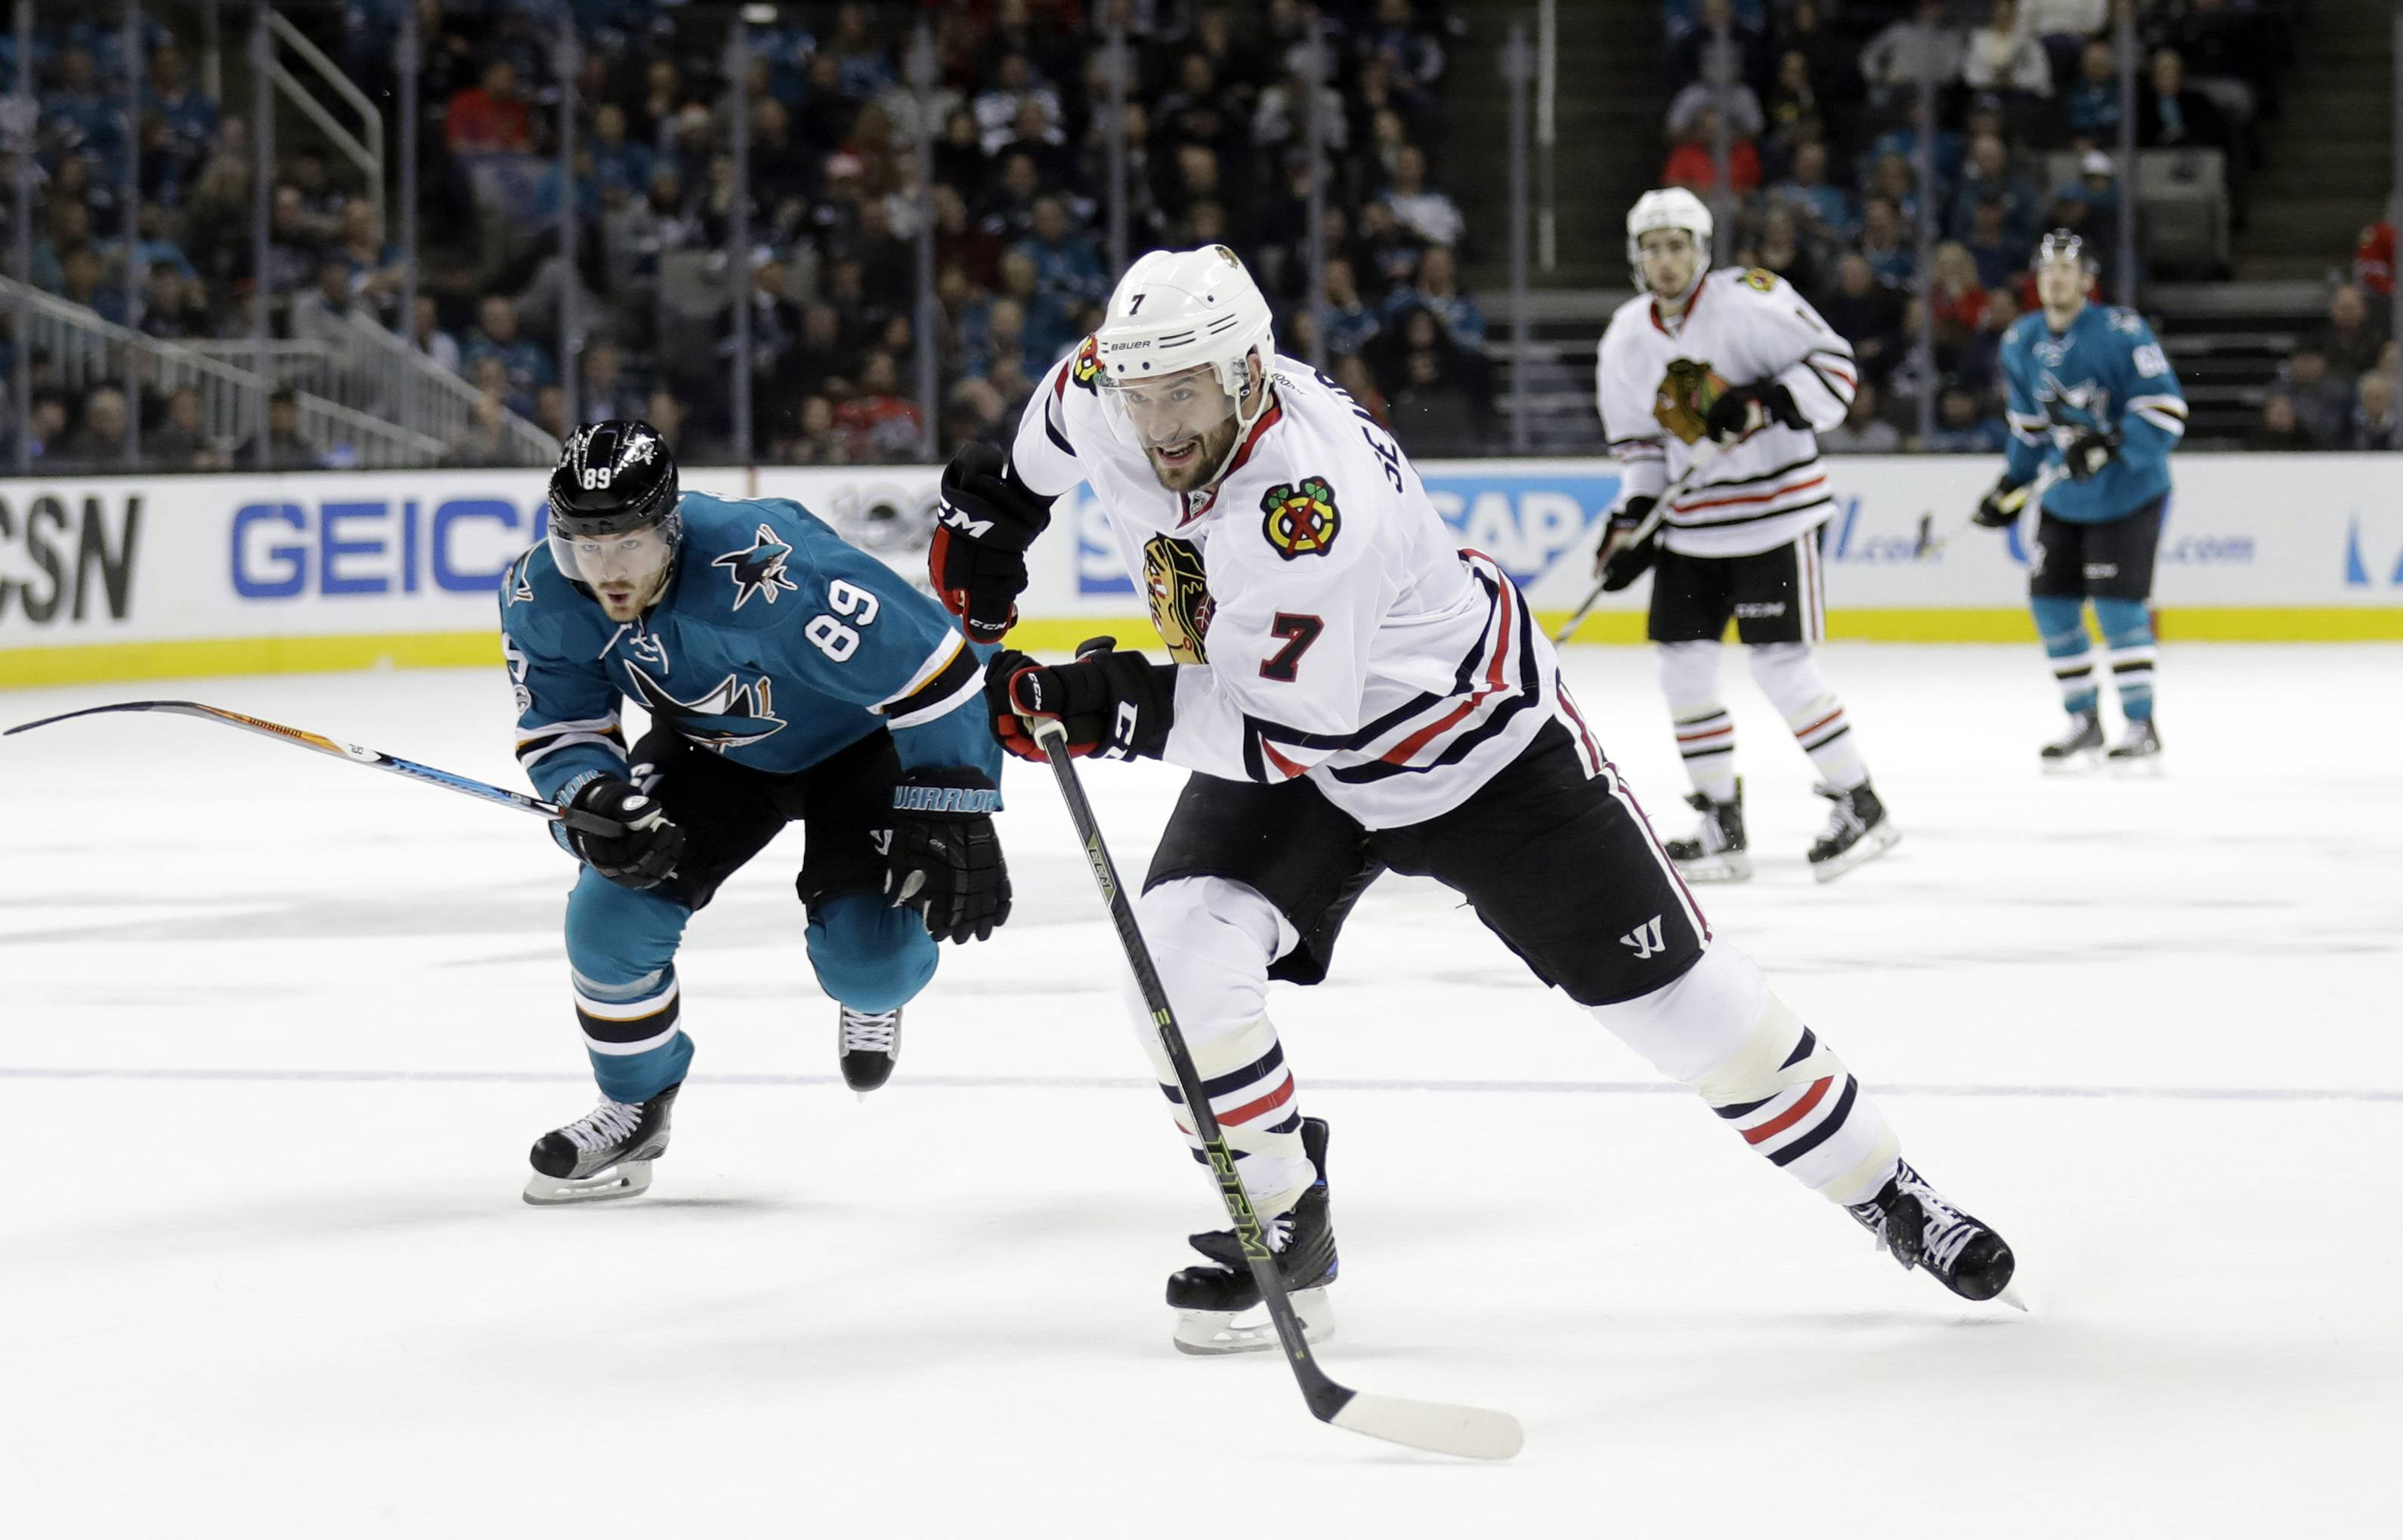 Seabrook looks to help Chicago Blackhawks regain the glory